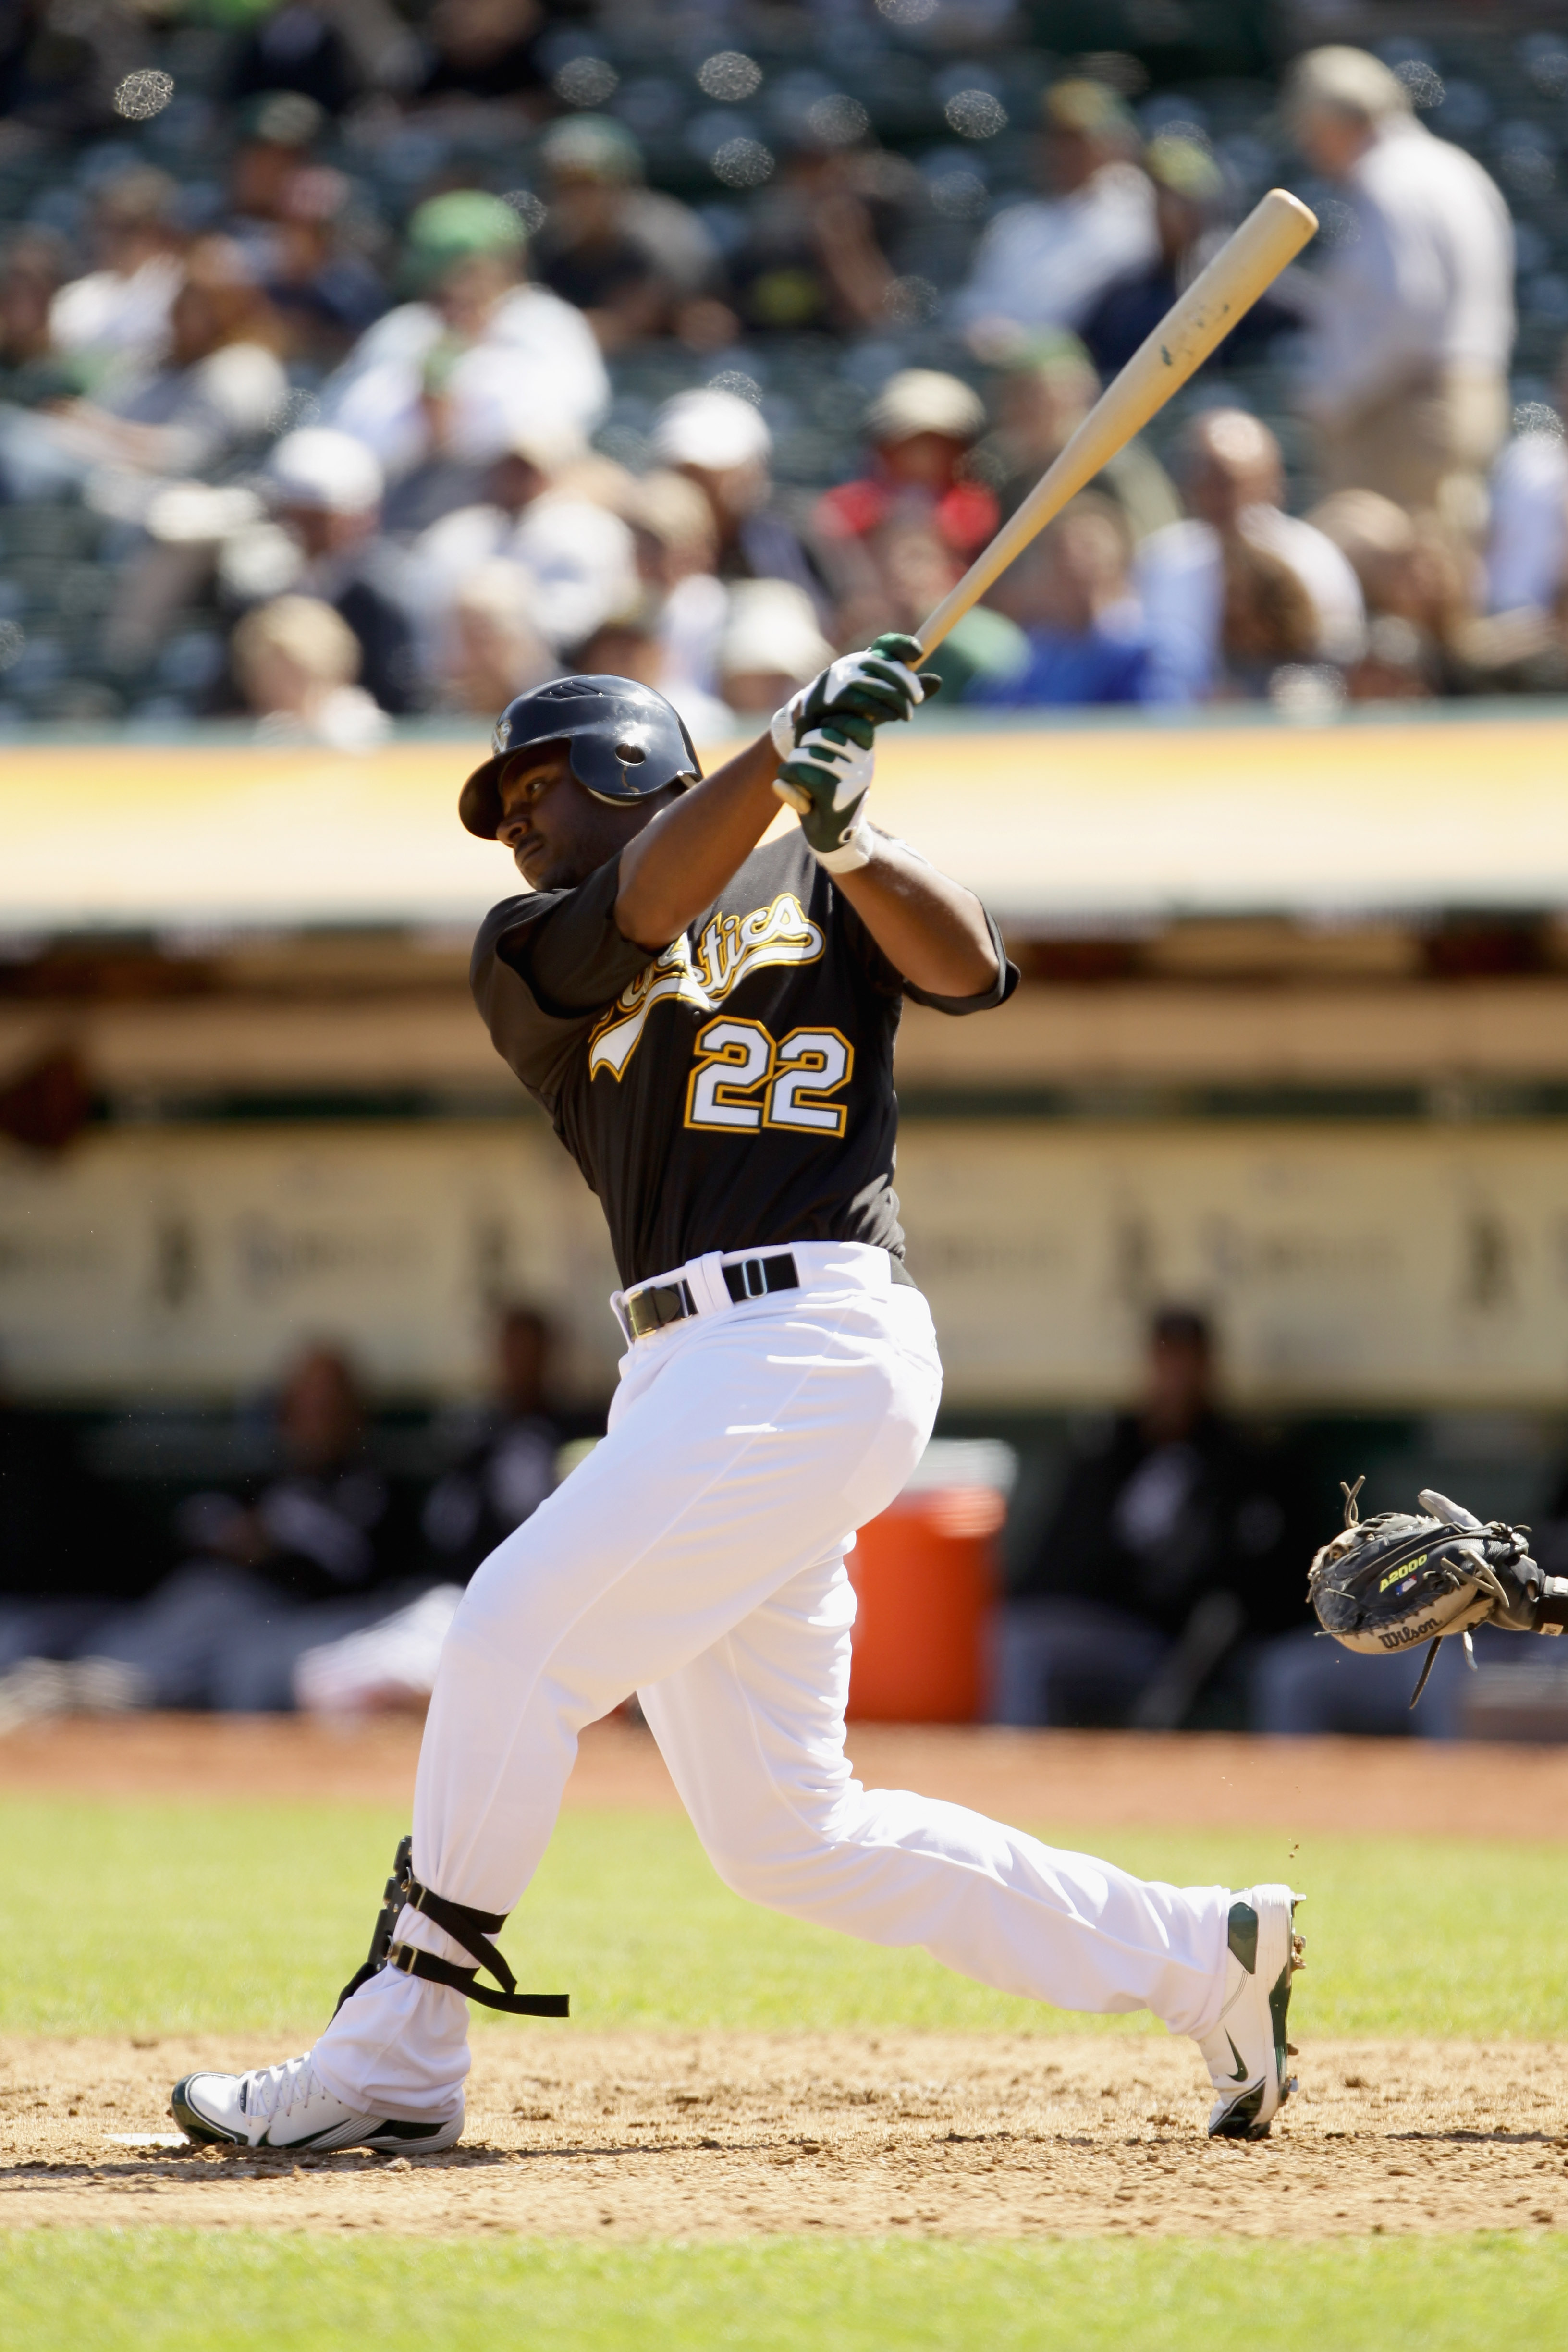 OAKLAND, CA - SEPTEMBER 22:  Chris Carter #22 of the Oakland Athletics bats against the Chicago White Sox at the Oakland-Alameda County Coliseum on September 22, 2010 in Oakland, California.  (Photo by Ezra Shaw/Getty Images)